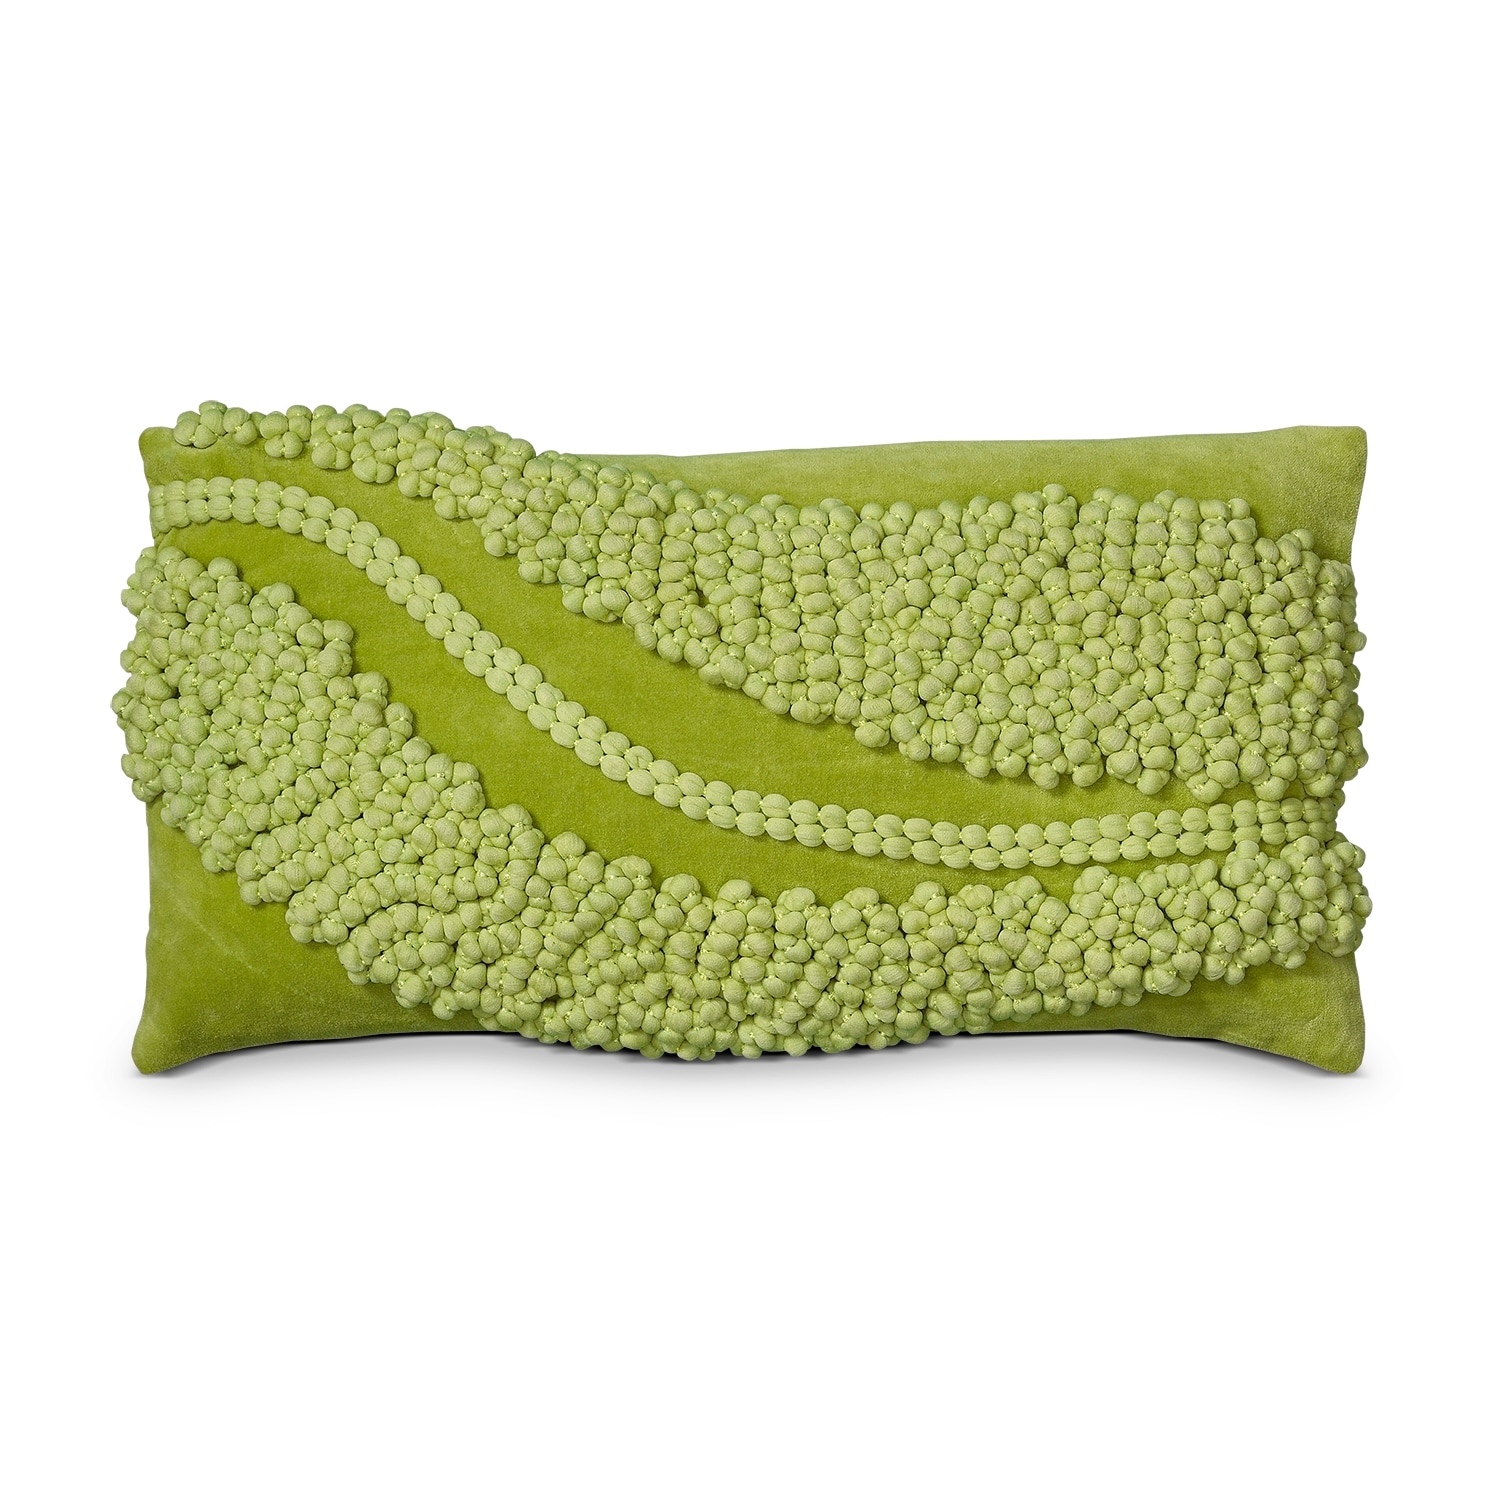 Maja Decorative Pillow